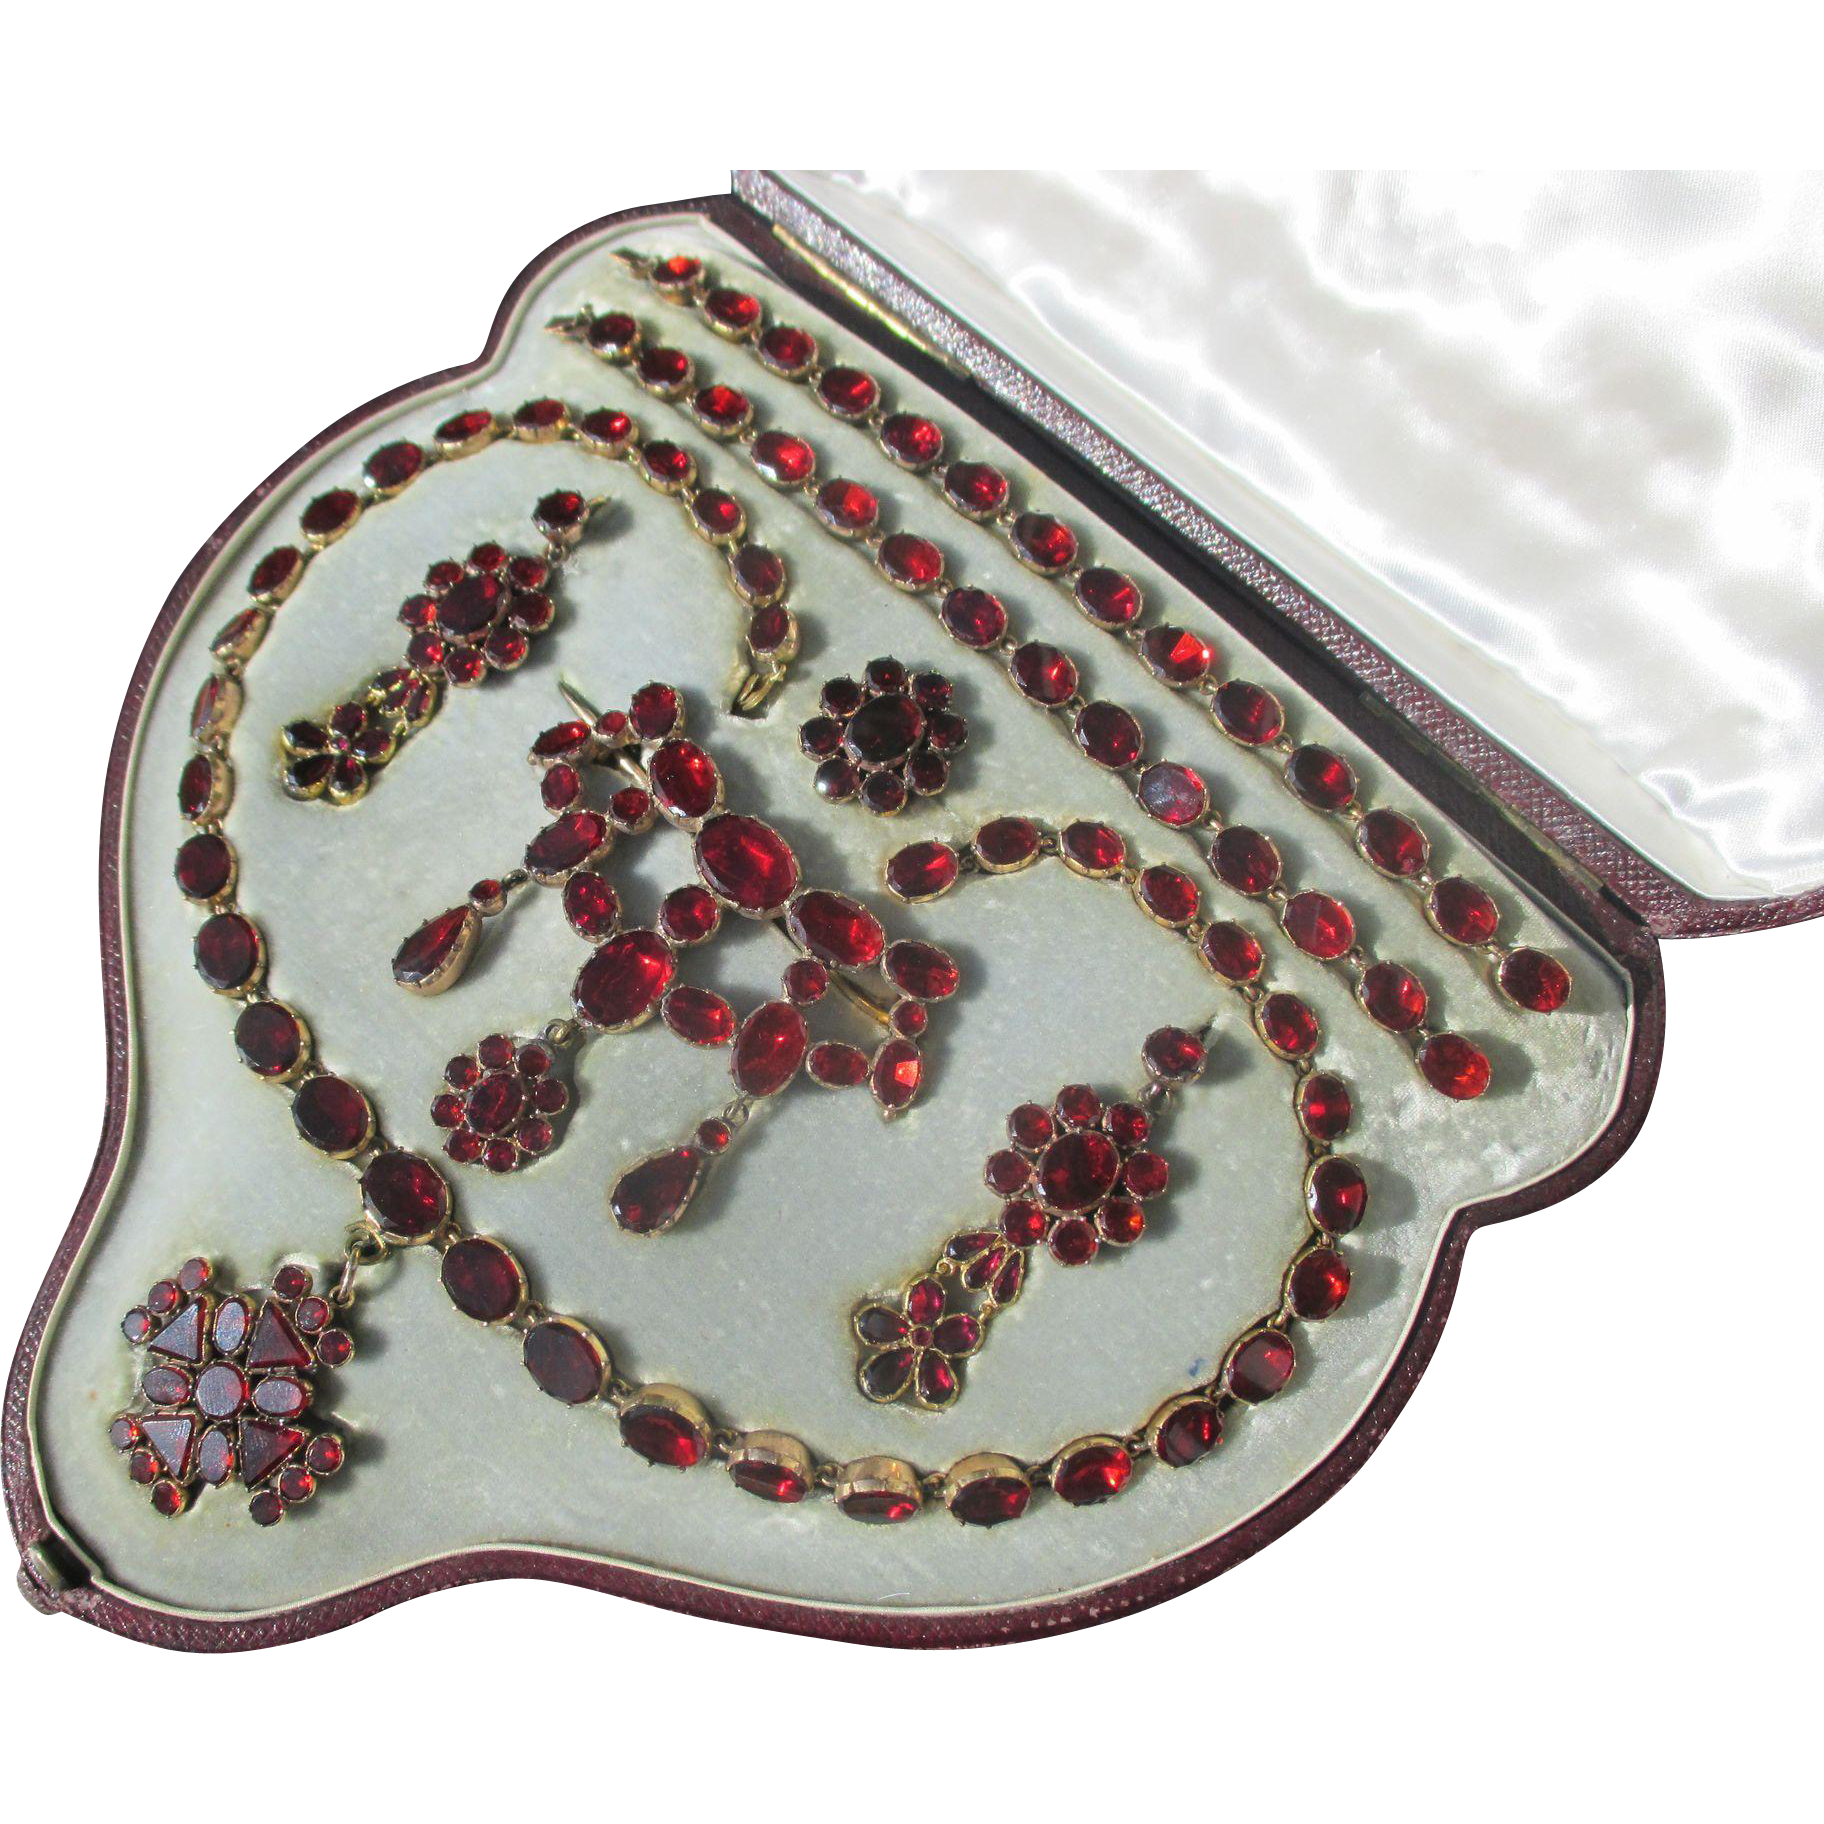 Shop Special! Antique Suite by Harvey and Gore Boxed Riviere Necklace 2 bracelets / 2 Brooches / Earrings / Garnet Paste